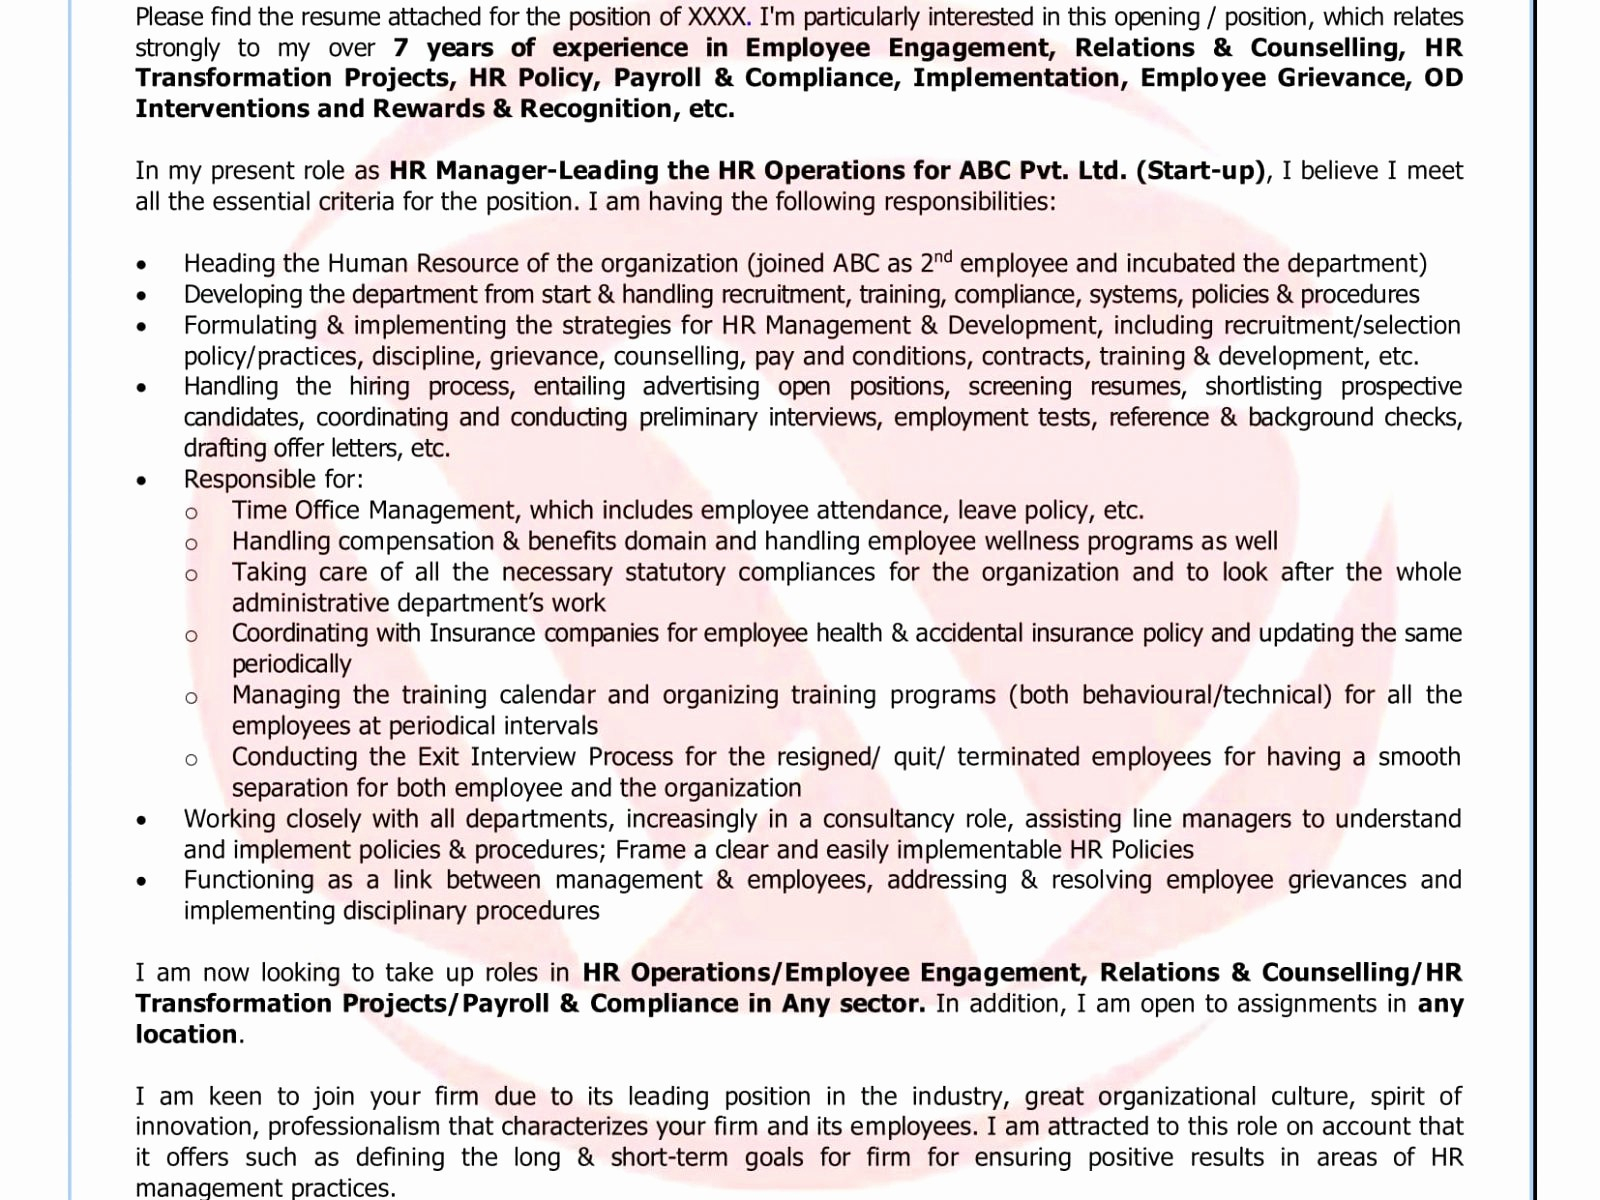 Executive assistant Resume Bullet Points - 25 Executive assistant Resume Bullet Points